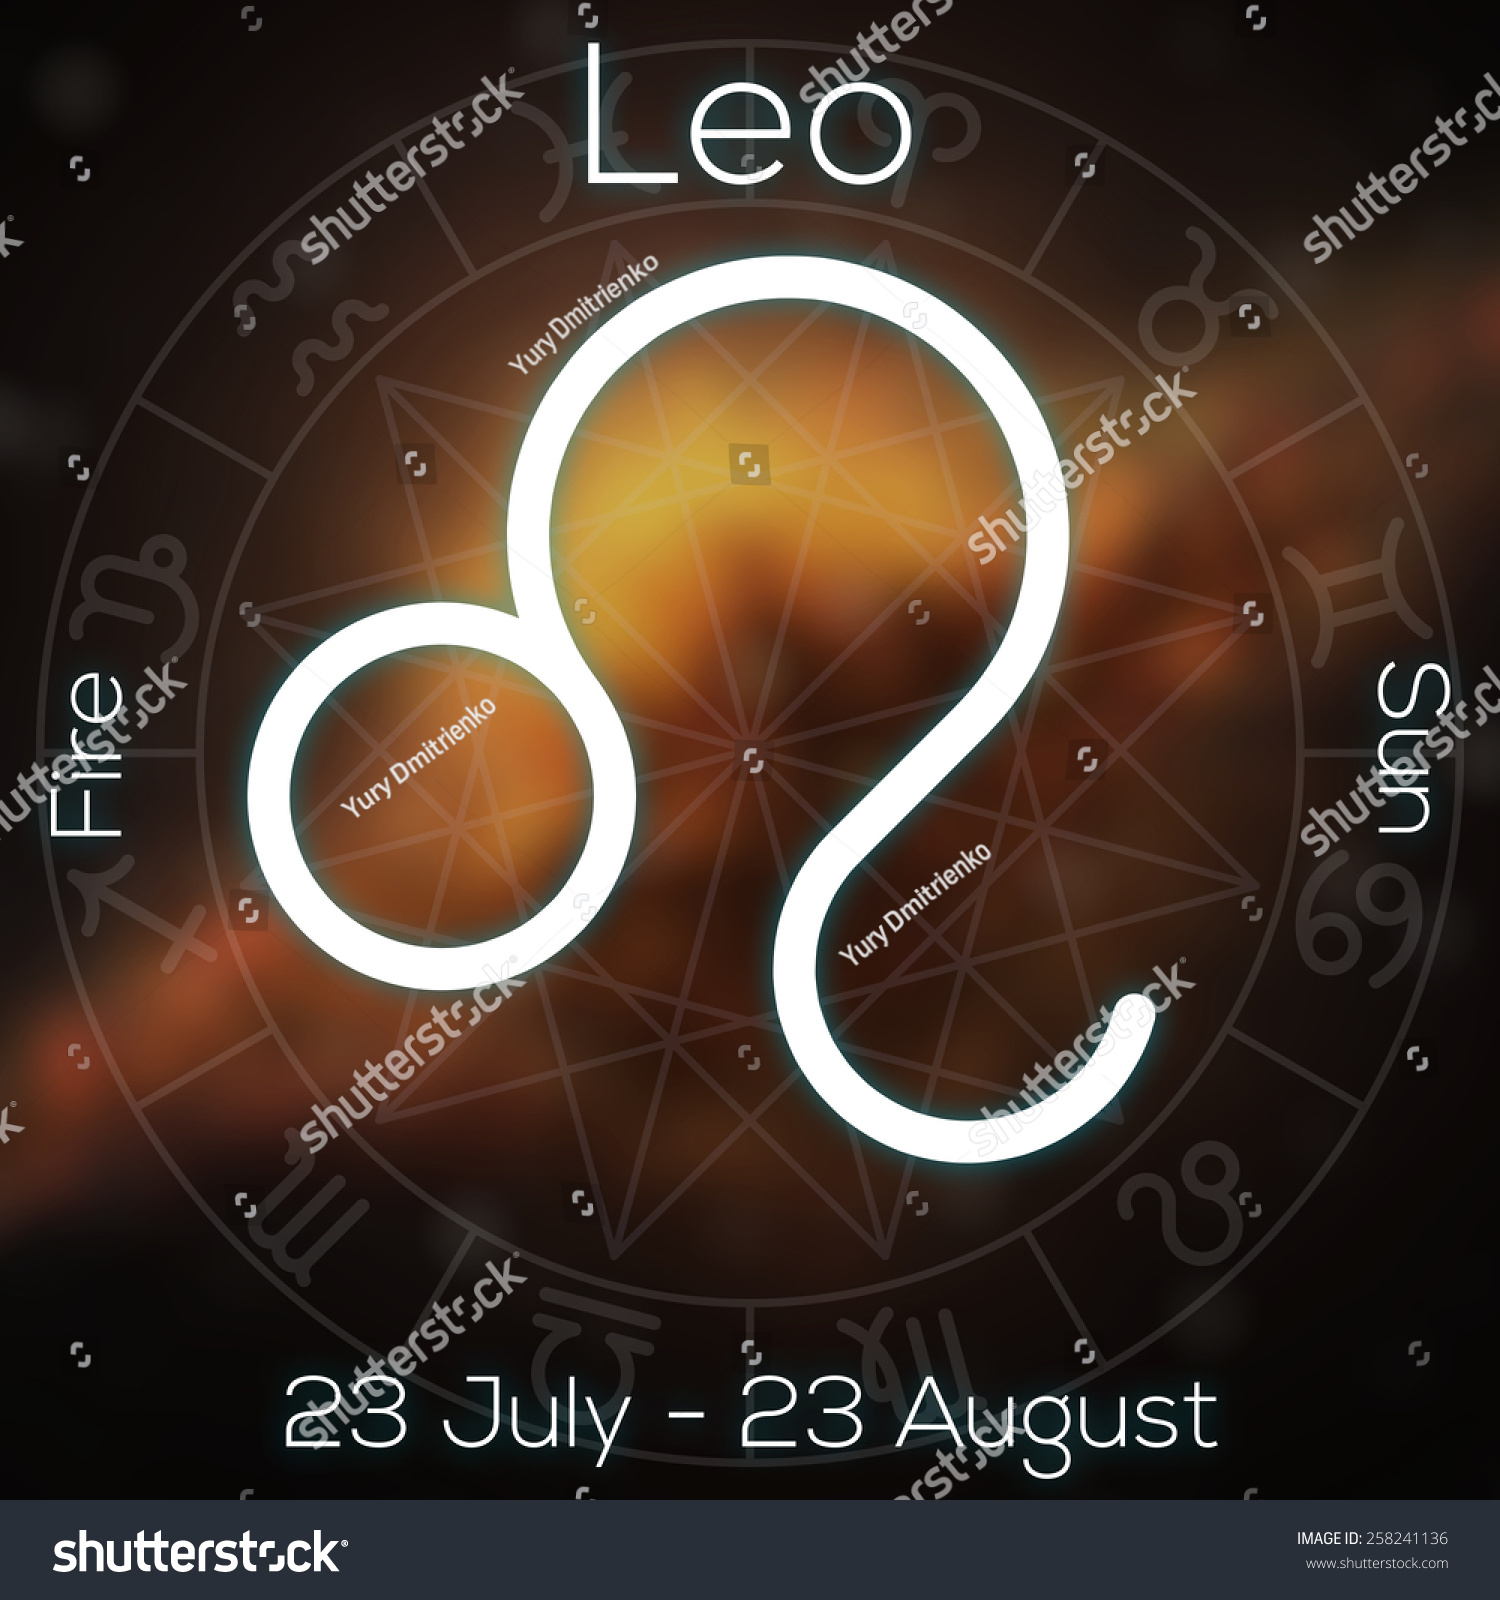 Leo astrology dates in Brisbane